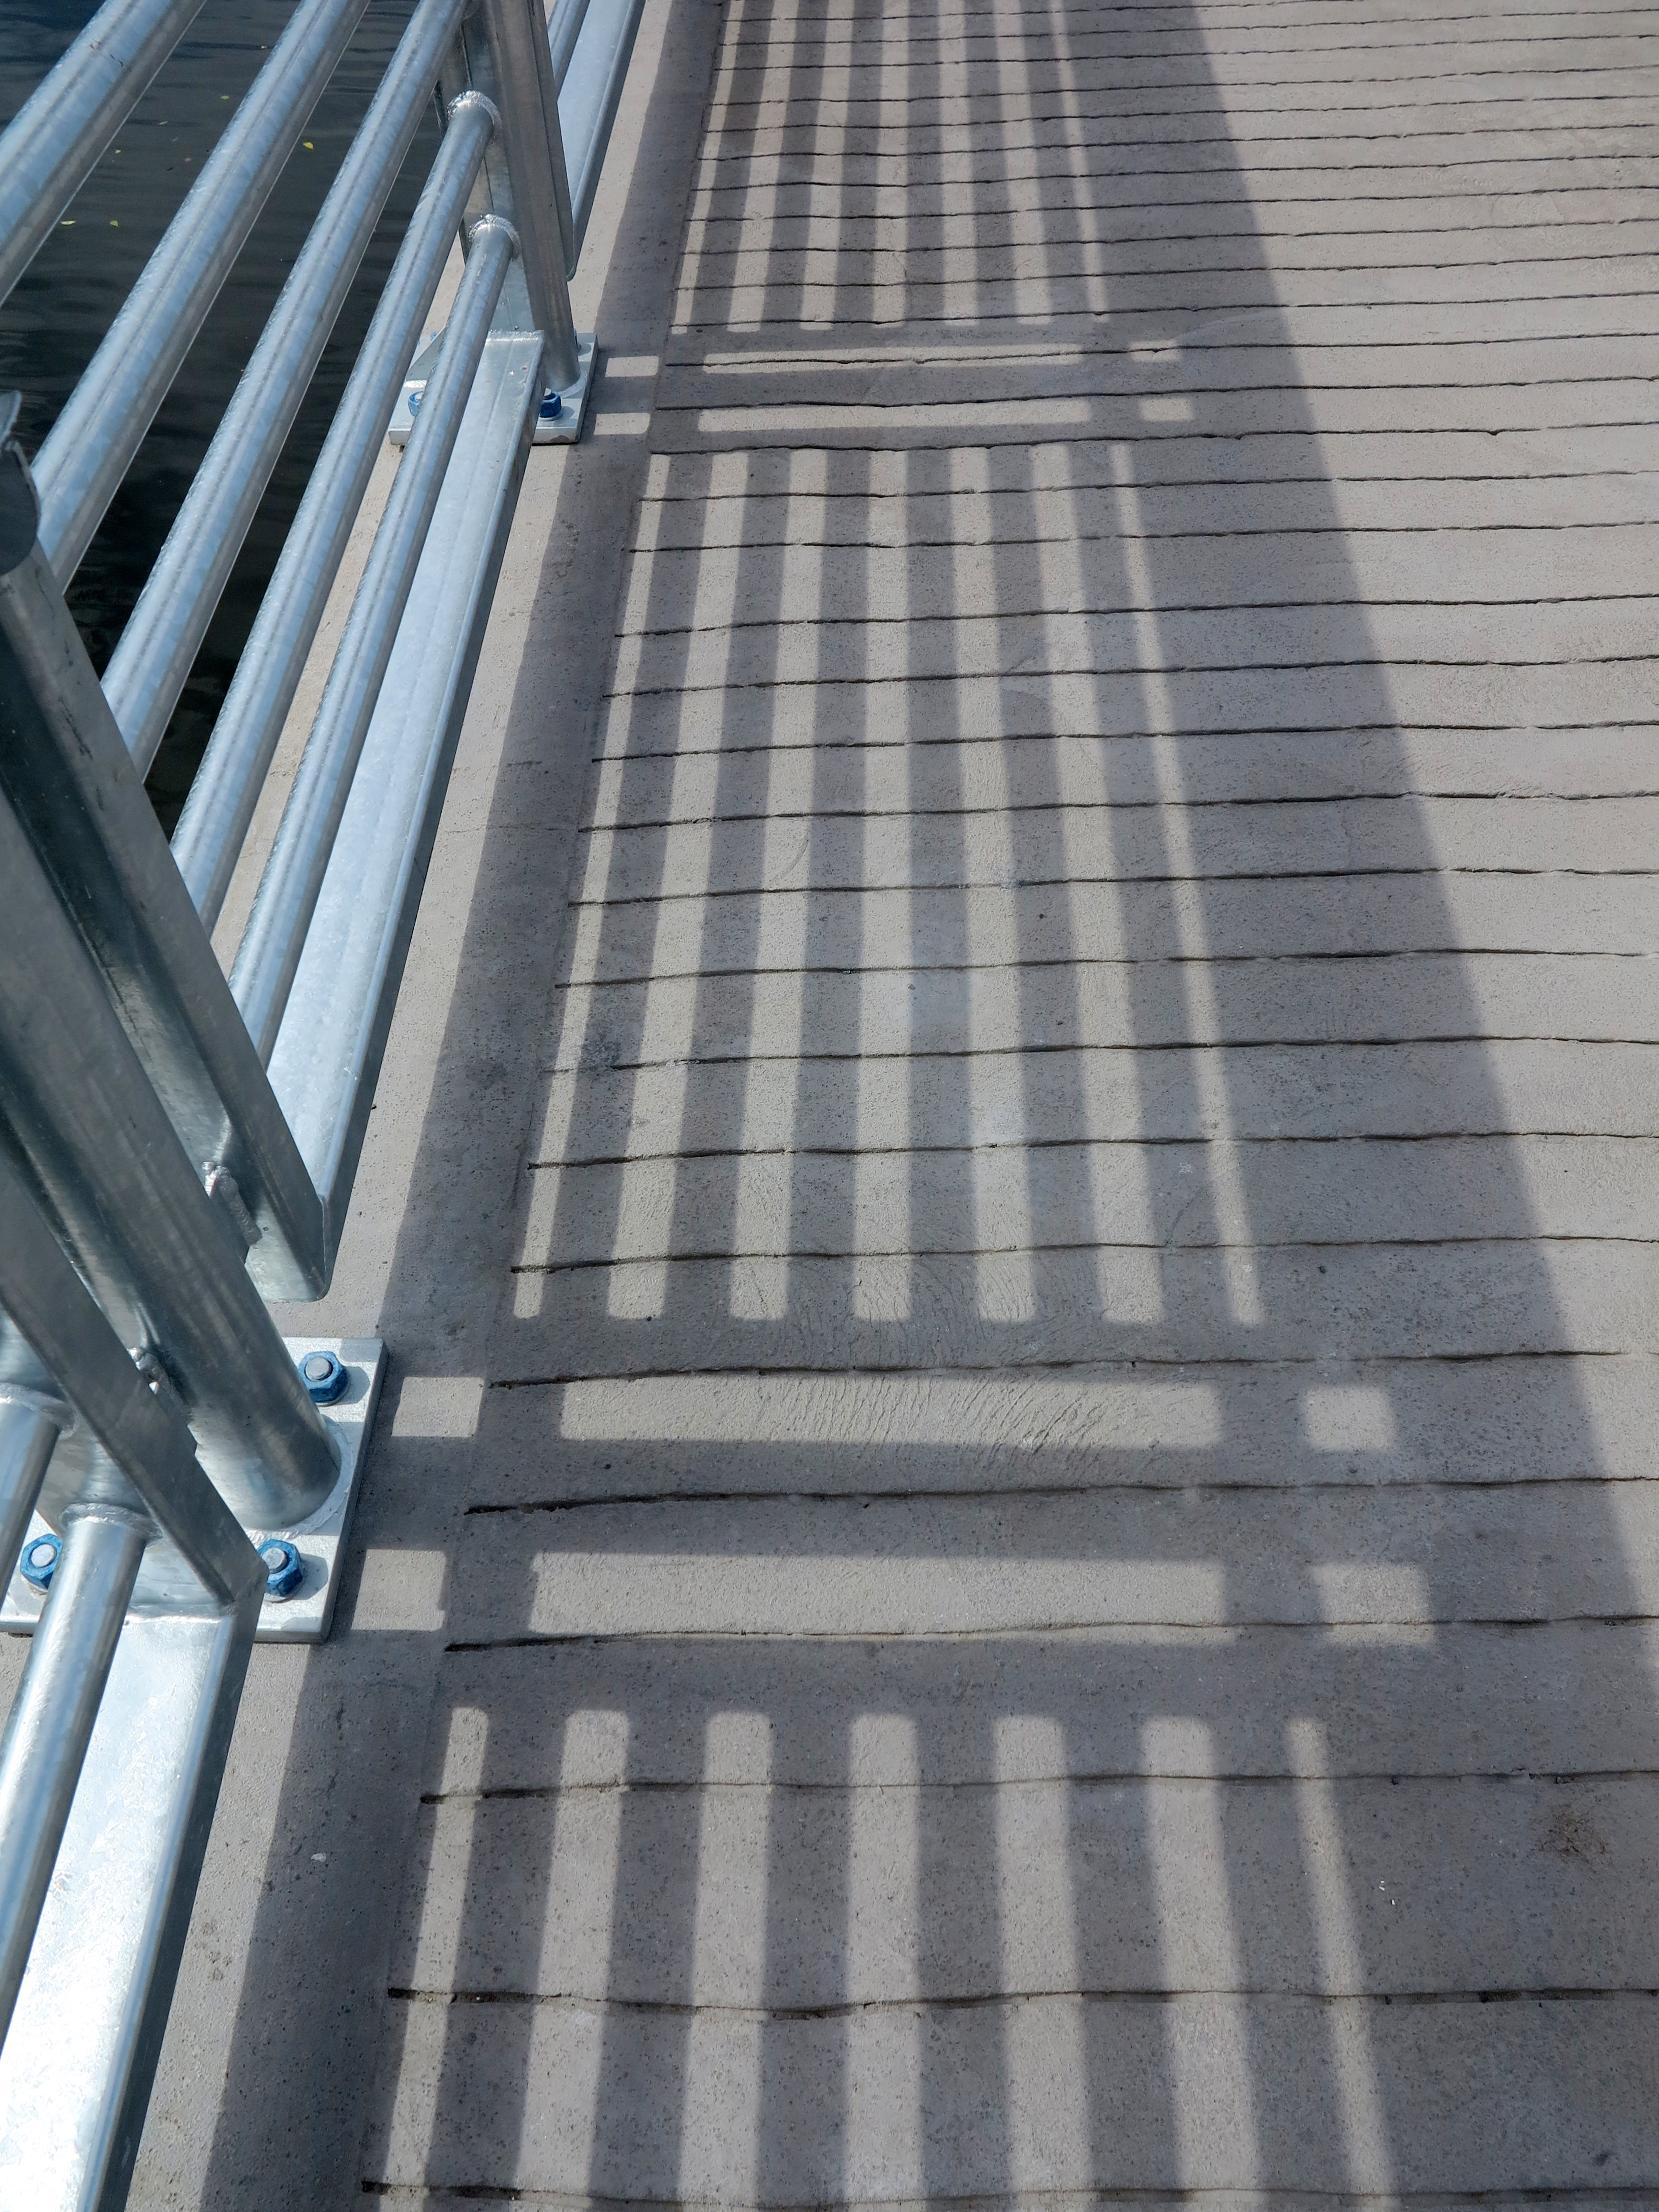 Boardwalk textures: Scored concrete, stainless stell railings